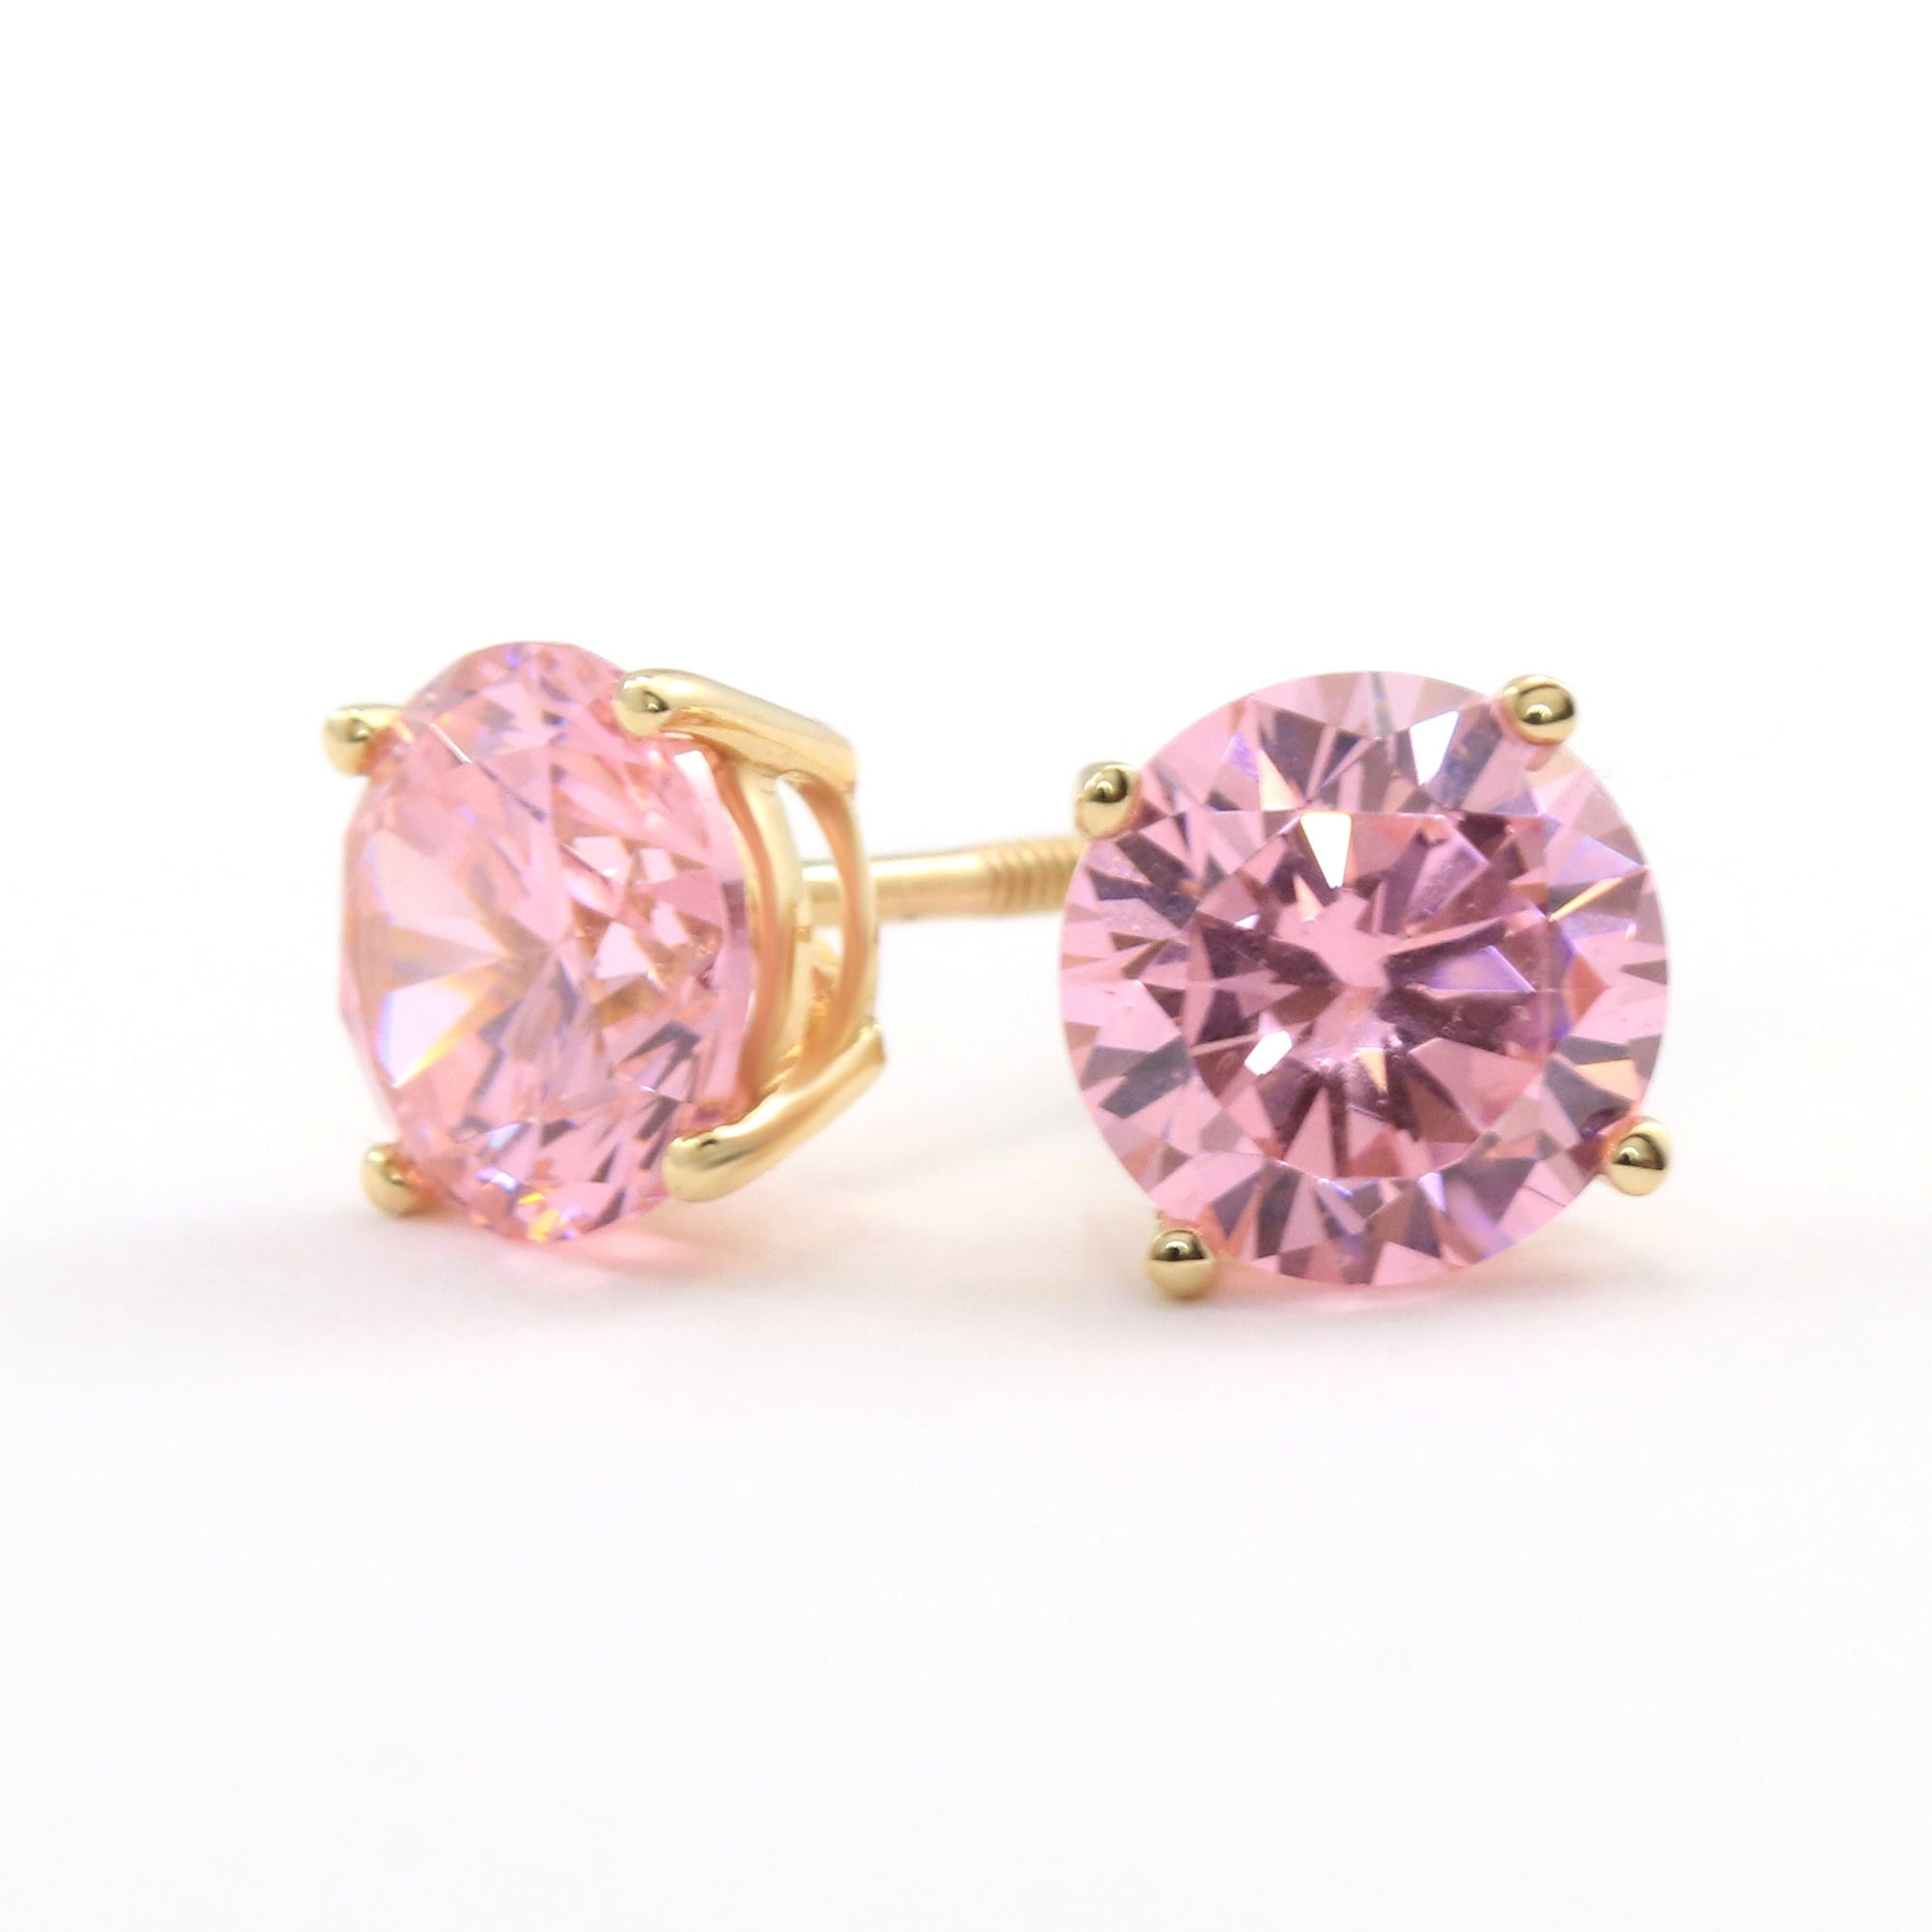 3 Ct Round Blue Earrings Studs Solid 14K Rose Pink Gold Screw Back Basket